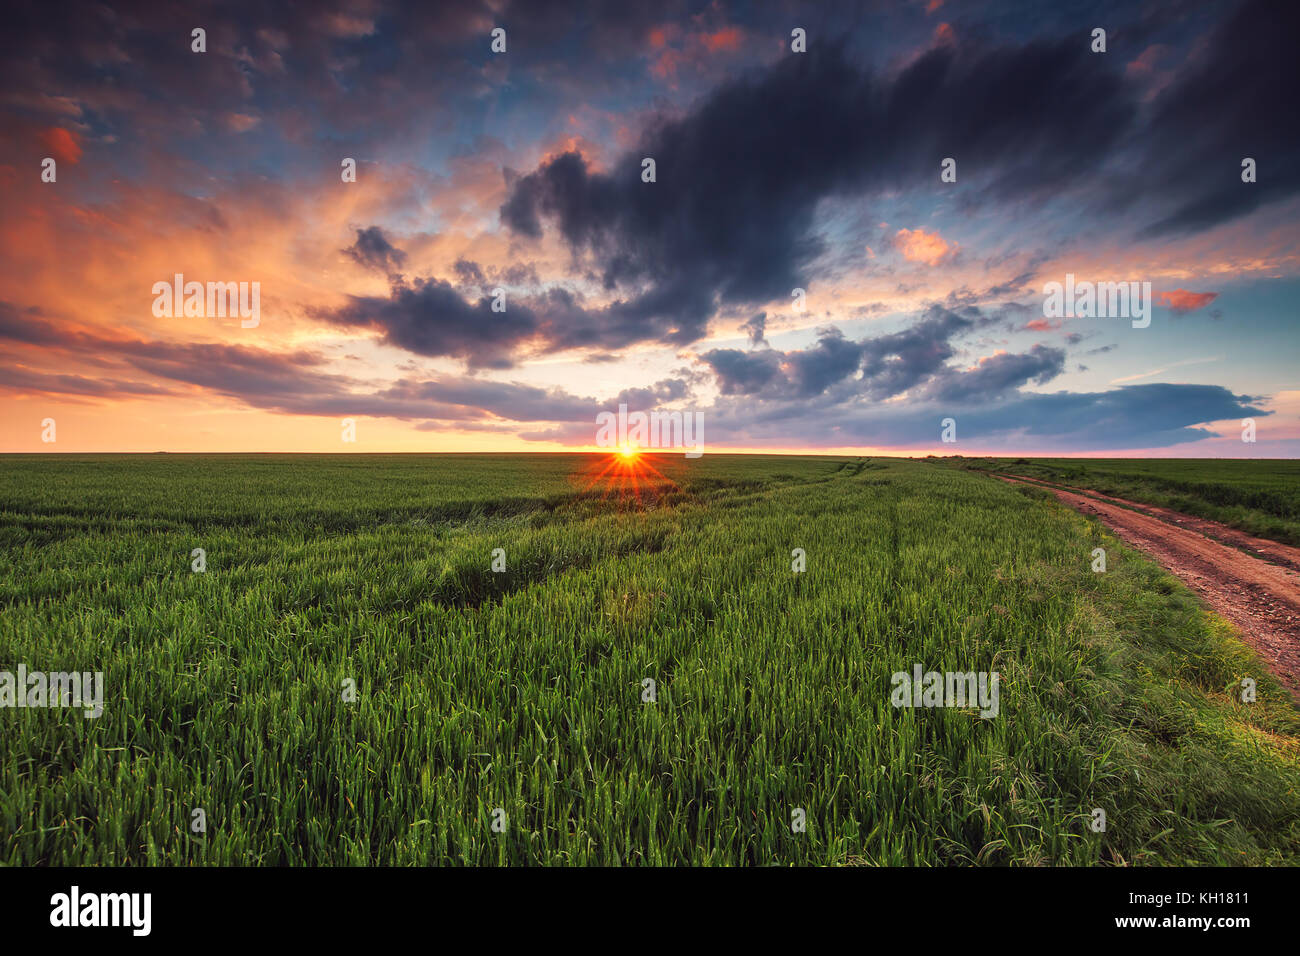 Sunset over green wheat field - Stock Image